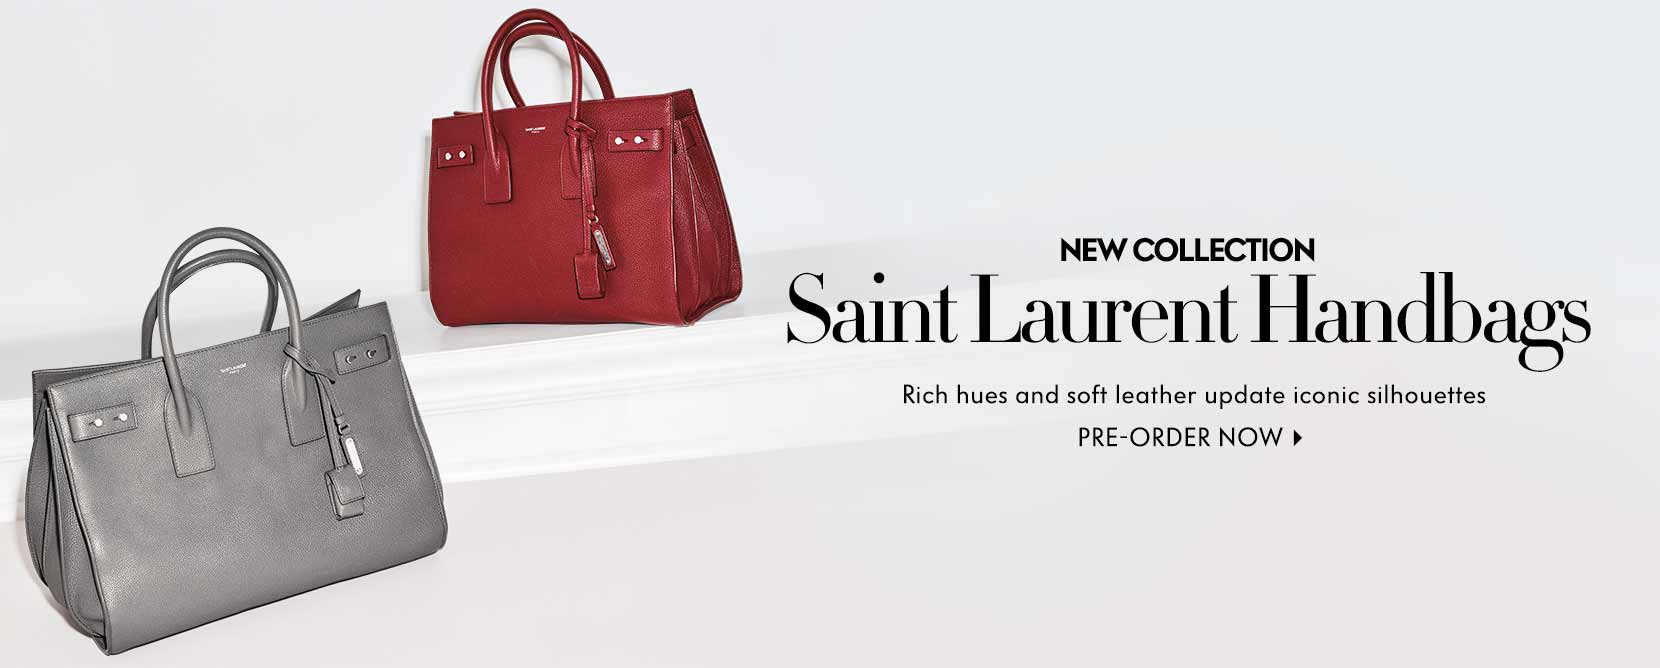 New collection Saing Laurent handbags rich hues and soft leather update iconic silhouettes